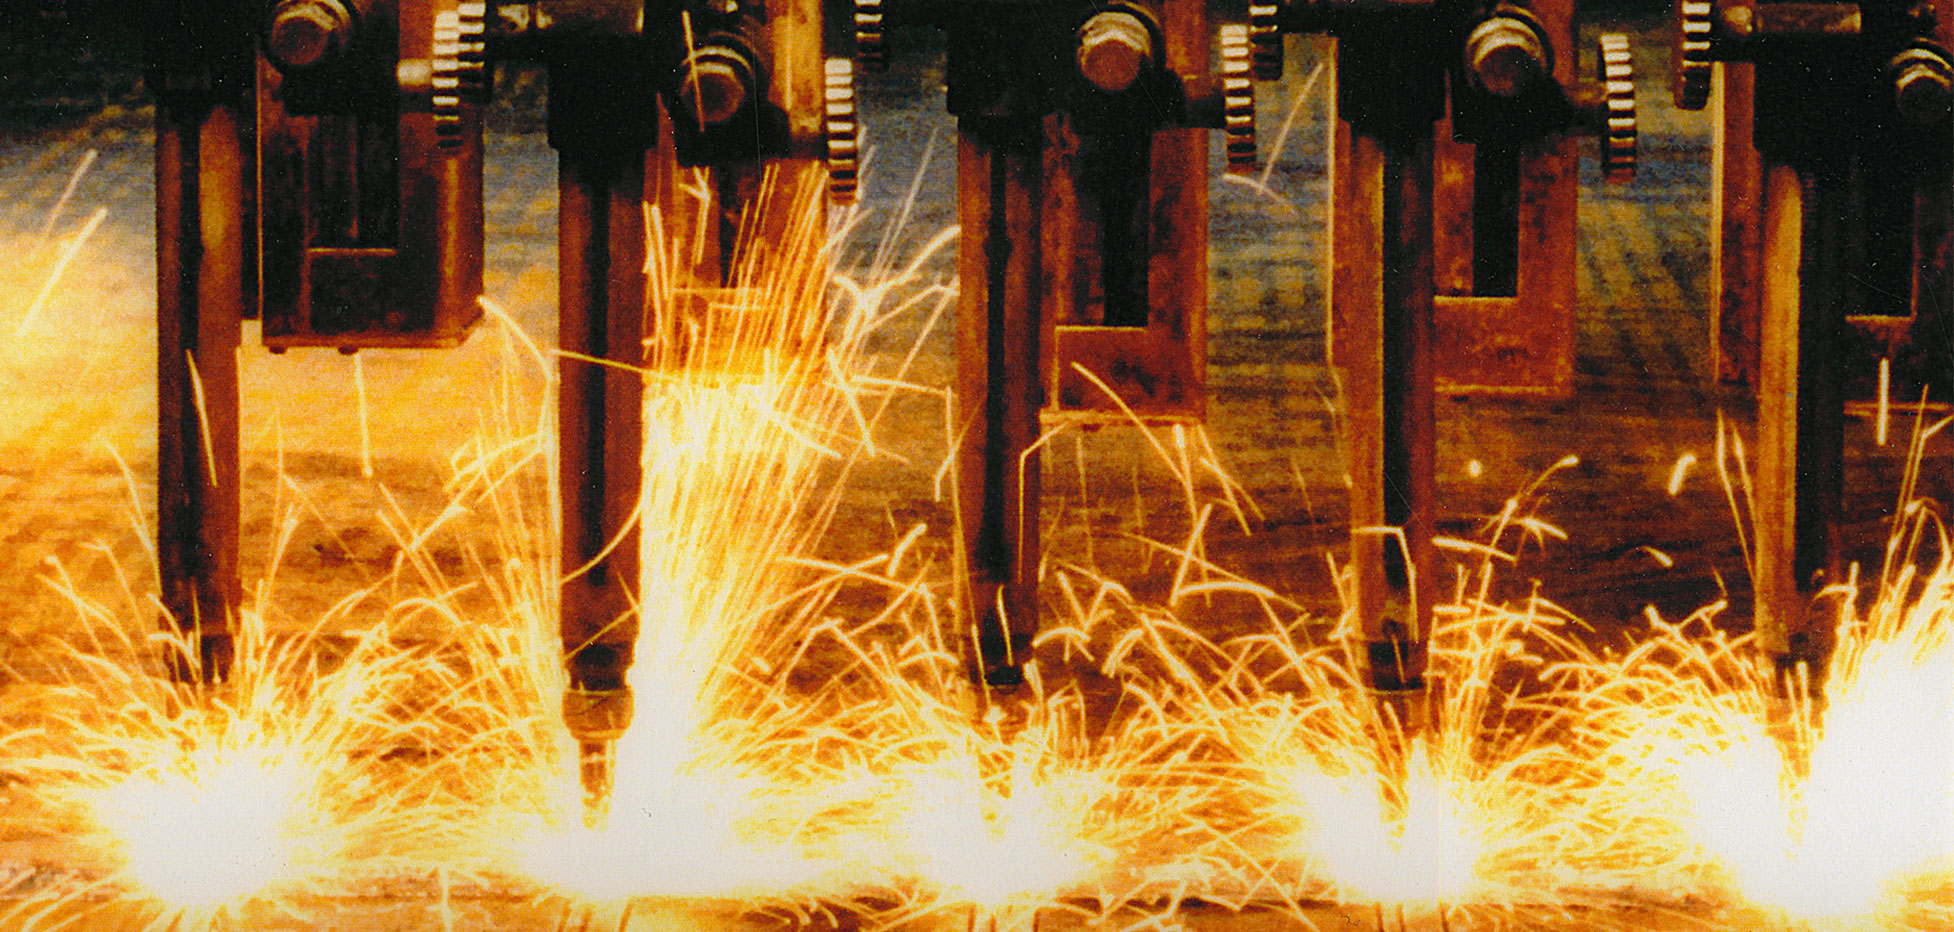 sparks at pacific steel and recycling center